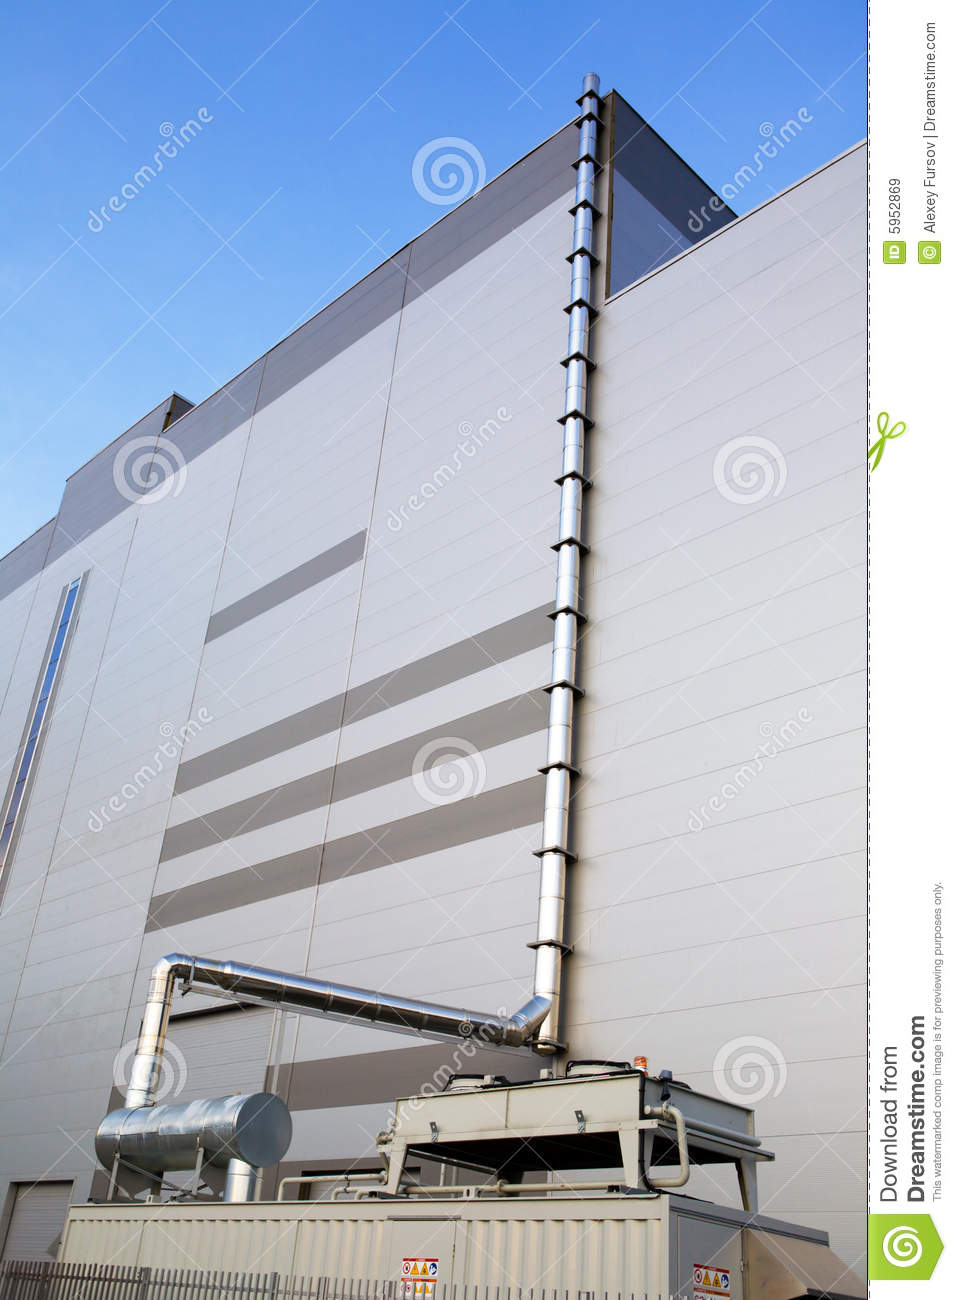 Industrial Ventilation Building : Industrial ventilation system royalty free stock images